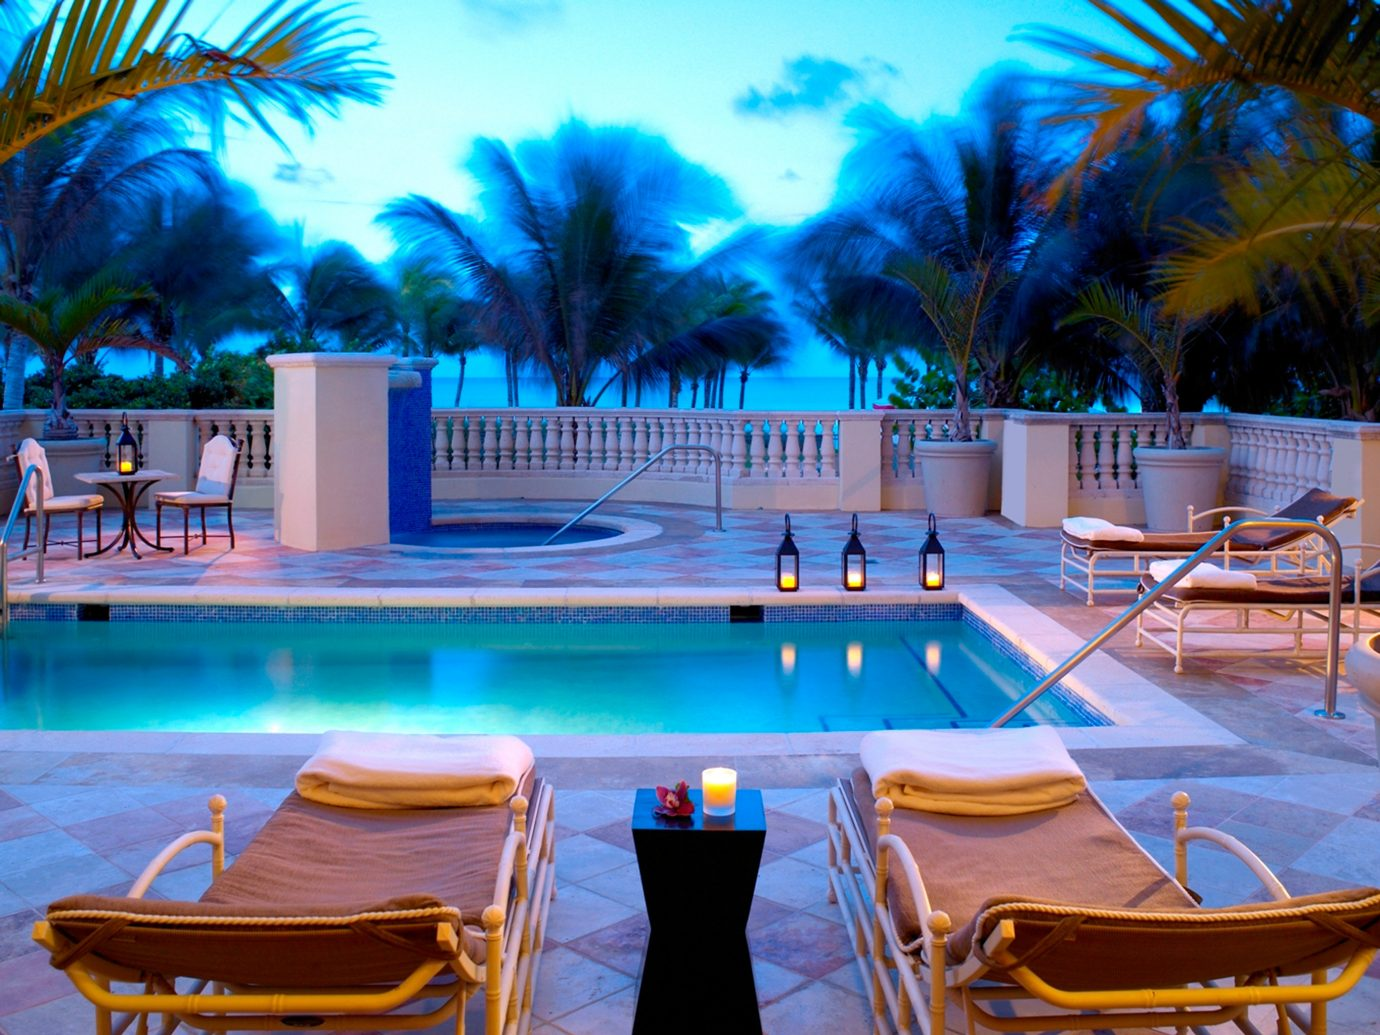 City Hotels Lounge Luxury Miami Miami Beach Outdoors Patio Pool Romance Romantic Waterfront tree leisure swimming pool chair Resort vacation estate caribbean Villa palm